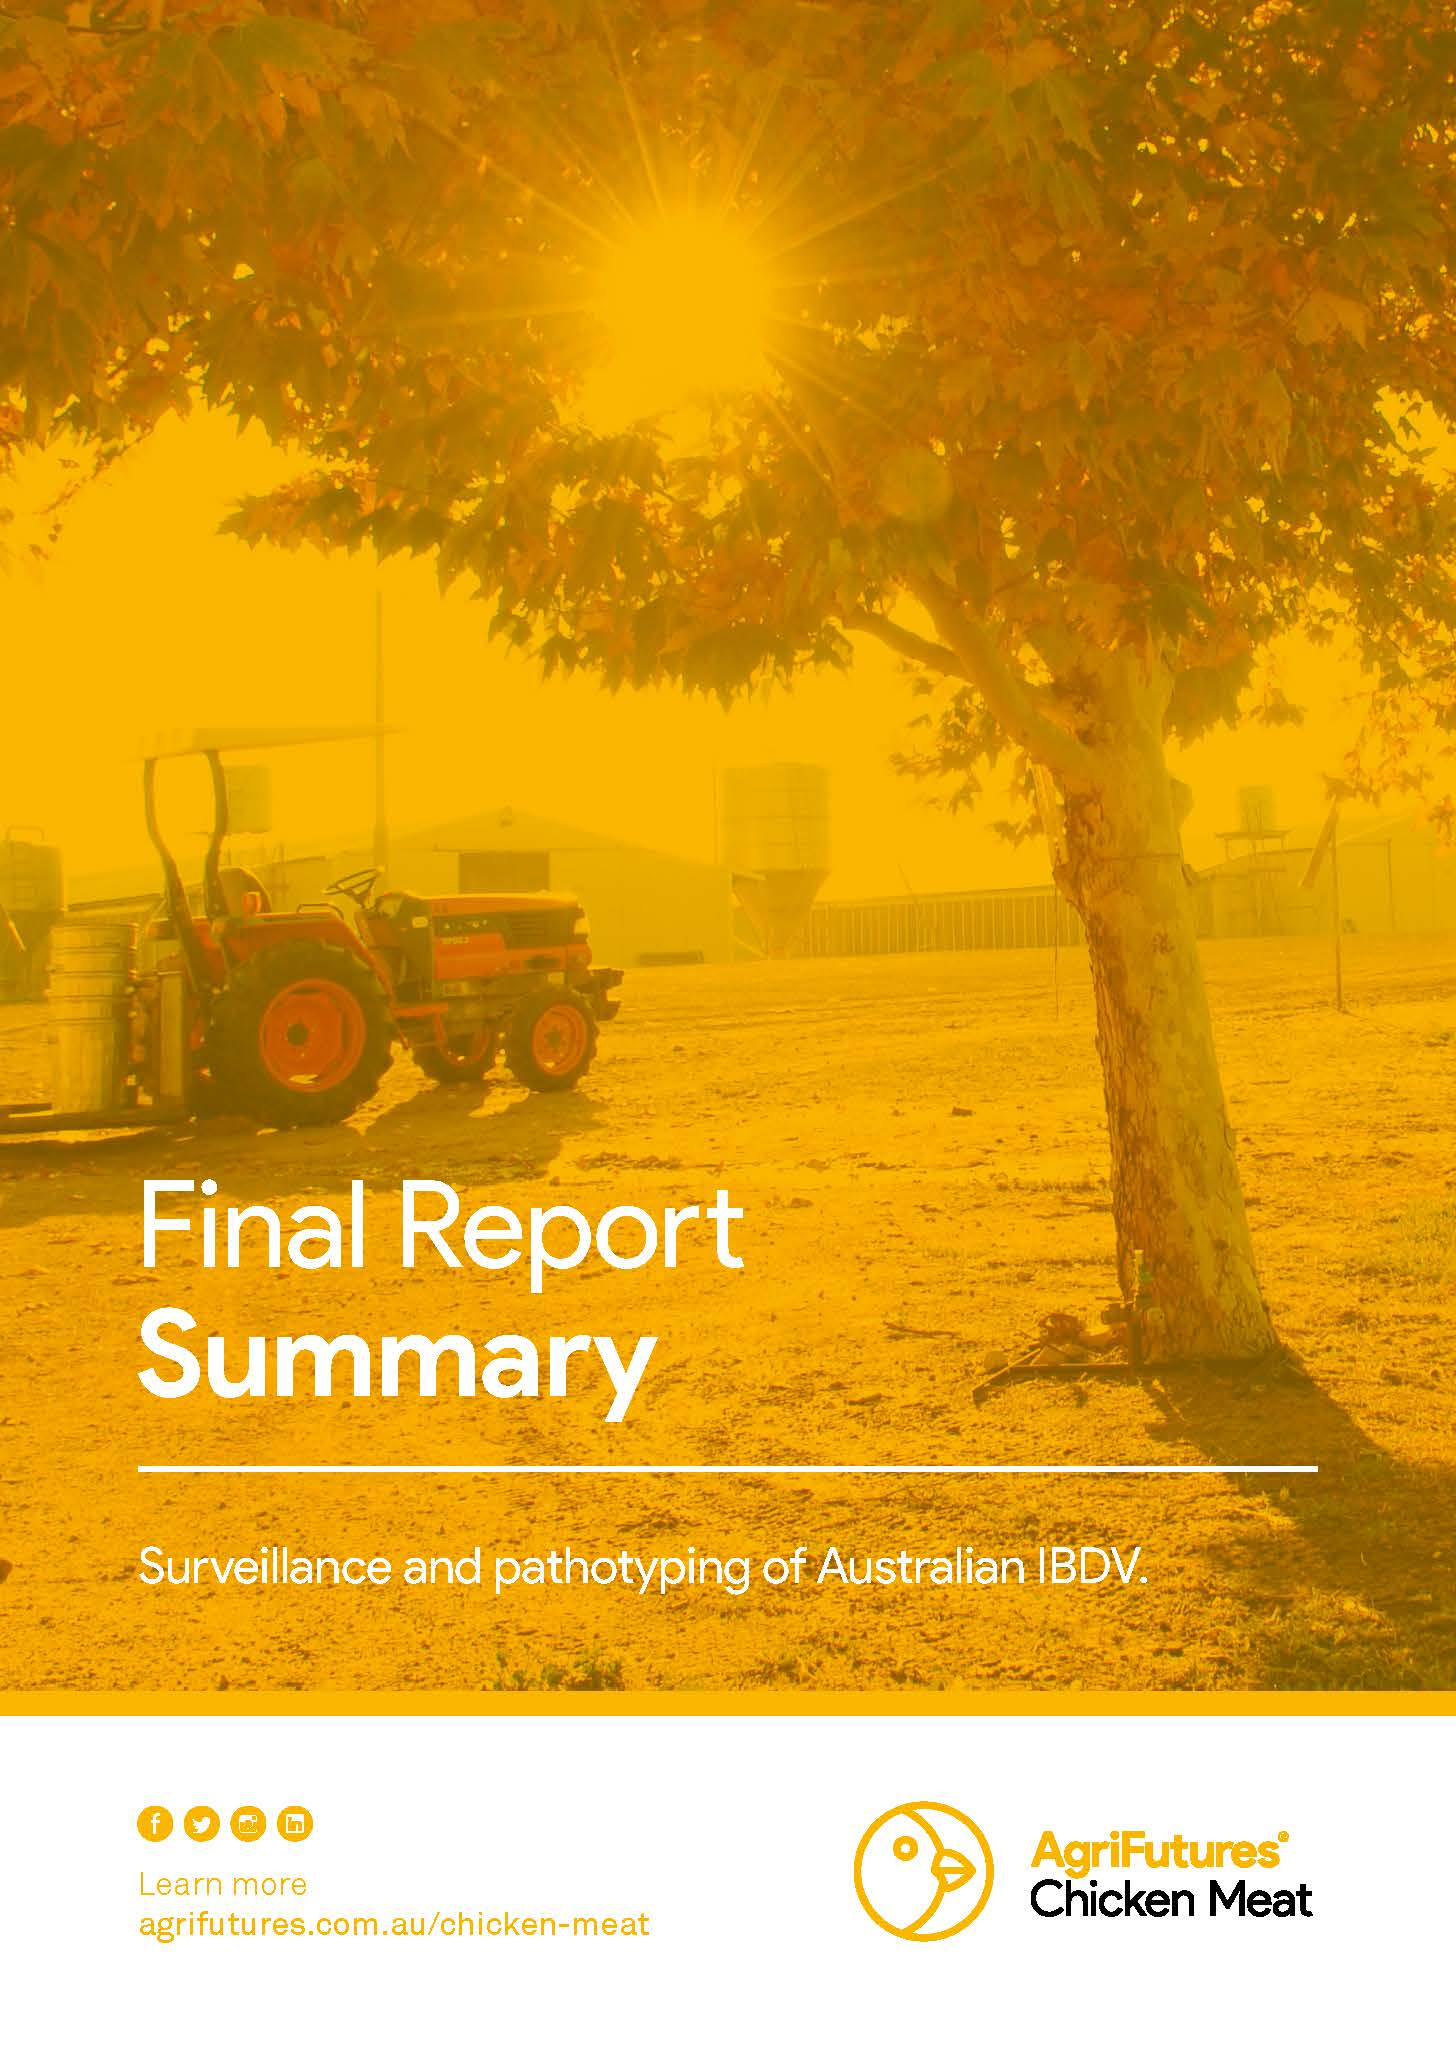 Final Report Summary: Surveillance and pathotyping in Australian IBDV - image